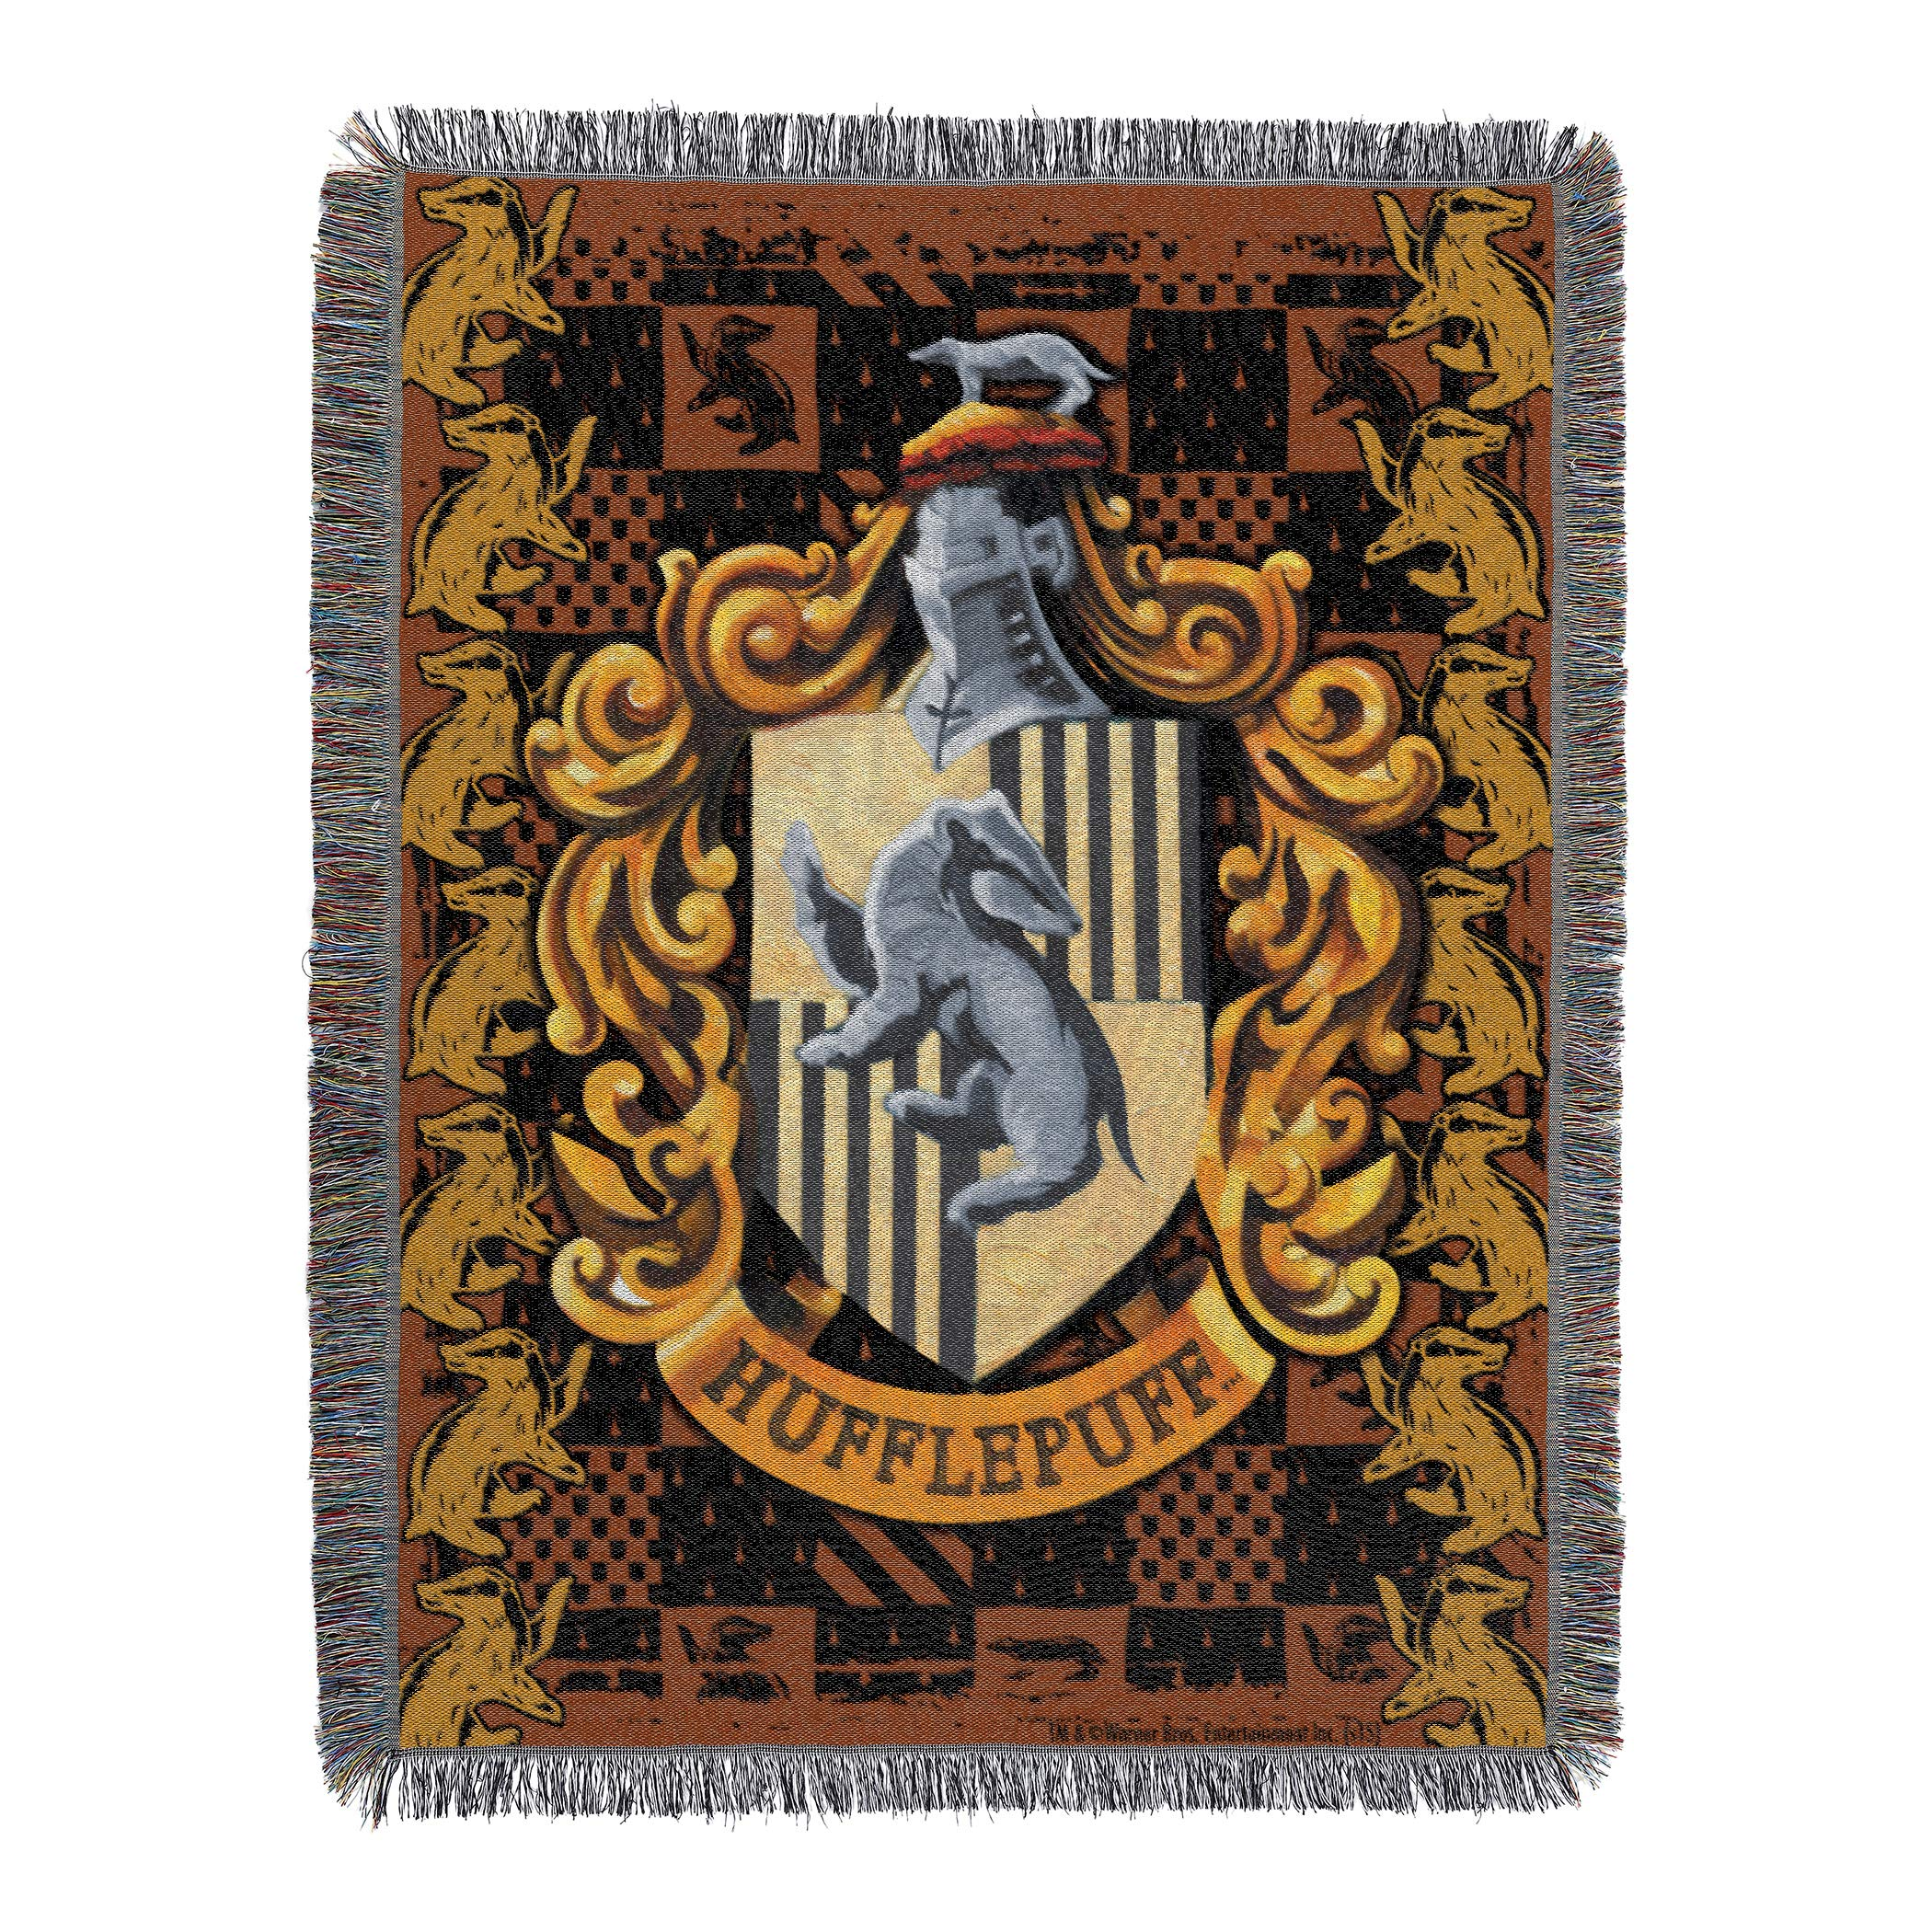 Warner Brothers Harry Potter, ''Hufflepuff Crest'' Woven Tapestry Throw Blanket, 48'' x 60'', Multi Color